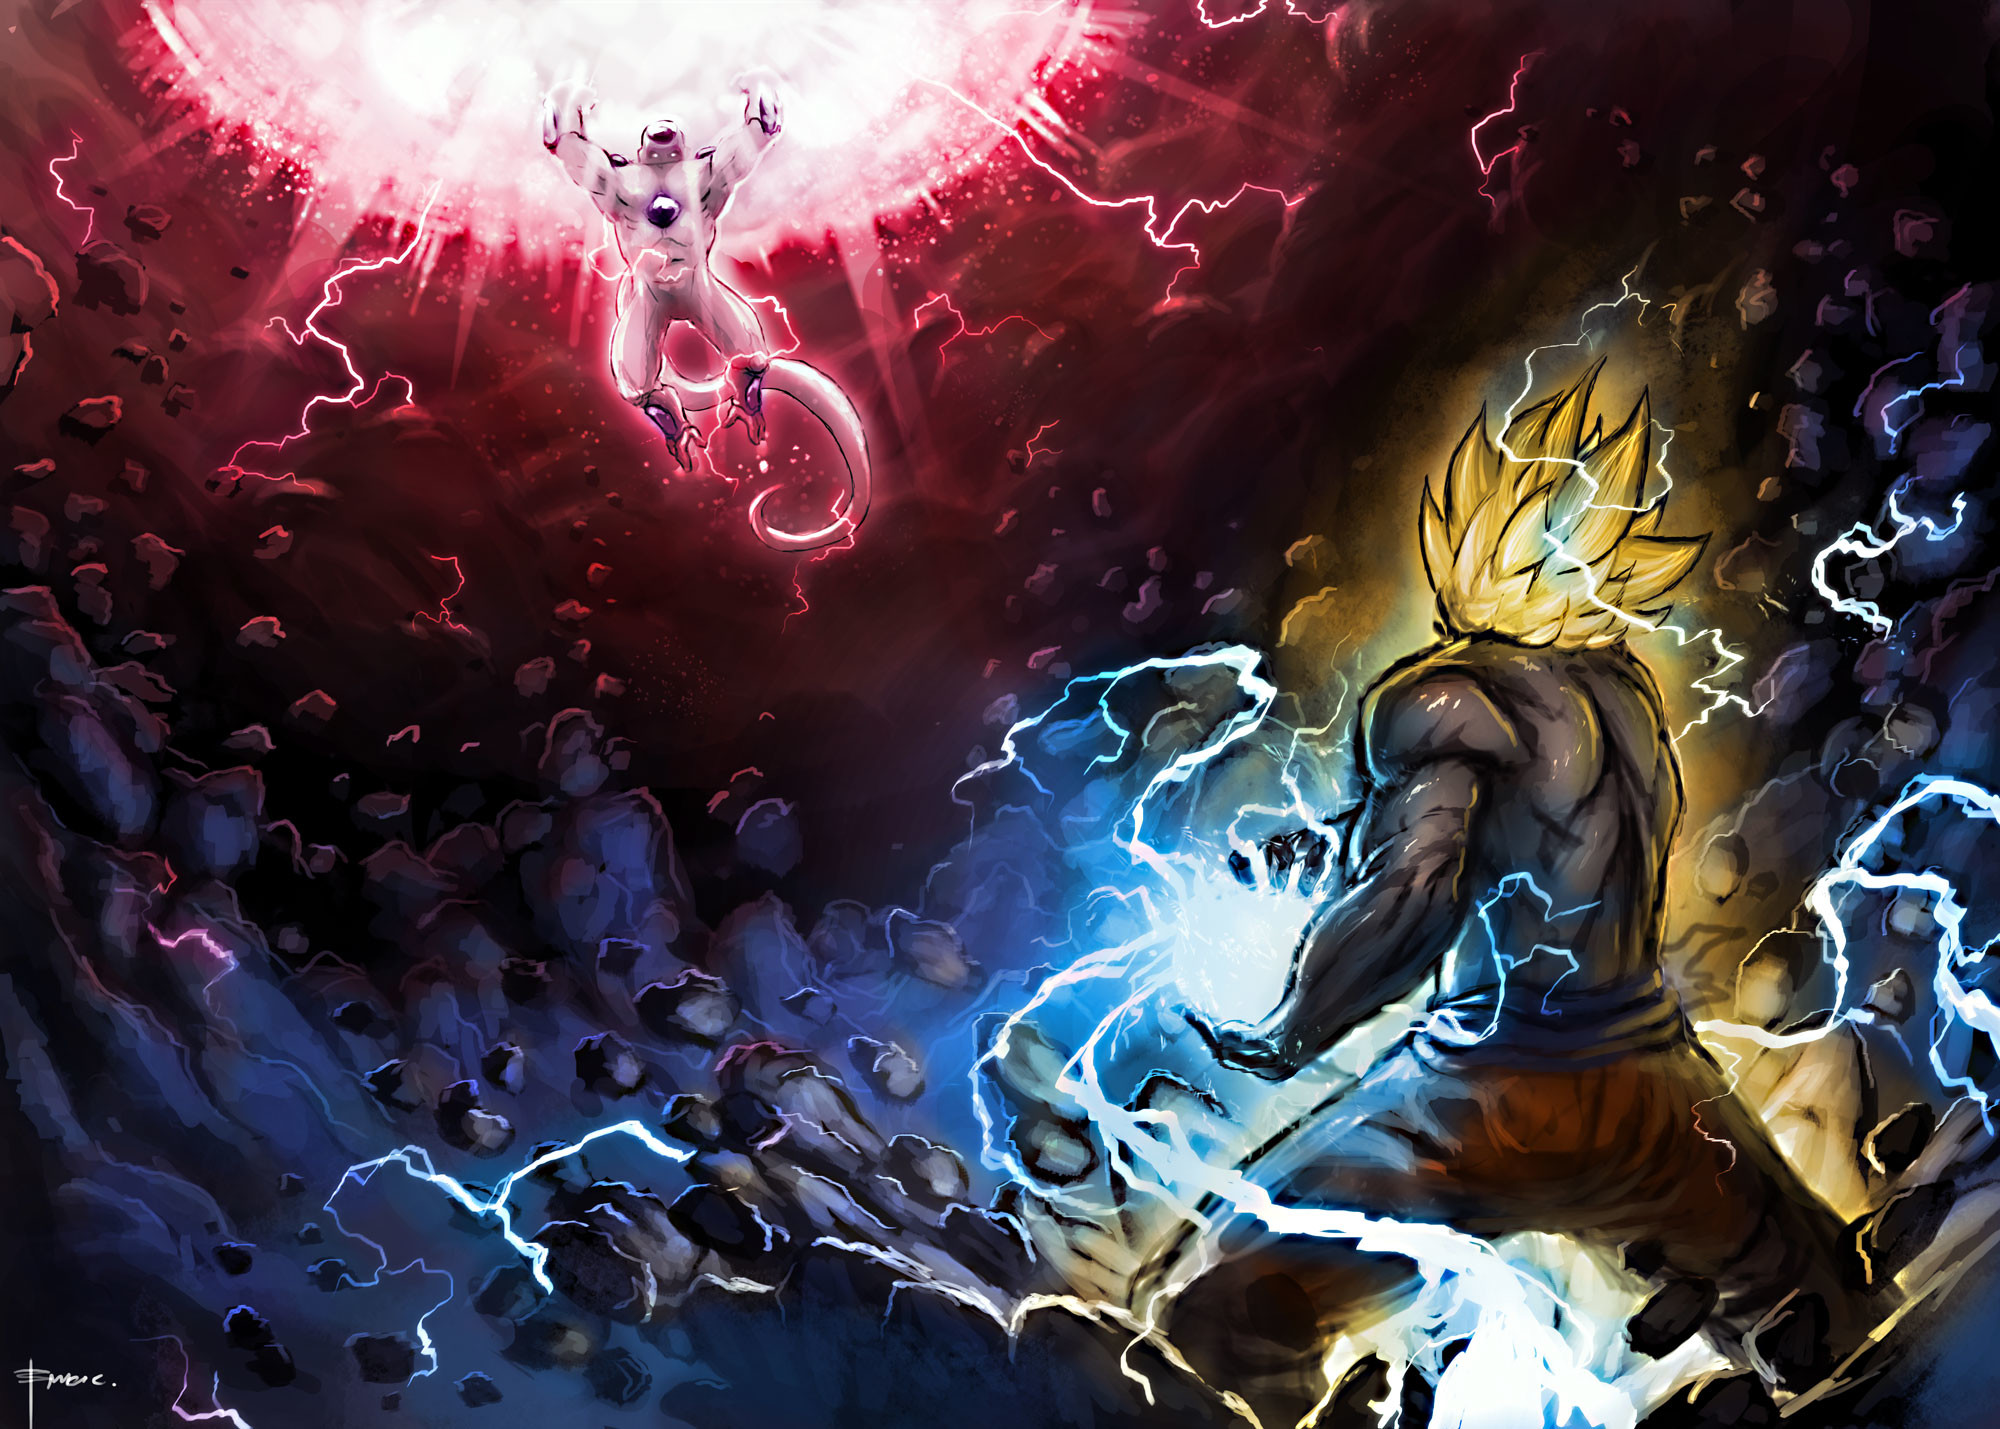 dbz hd wallpaper 1920x1080 (63+ images)